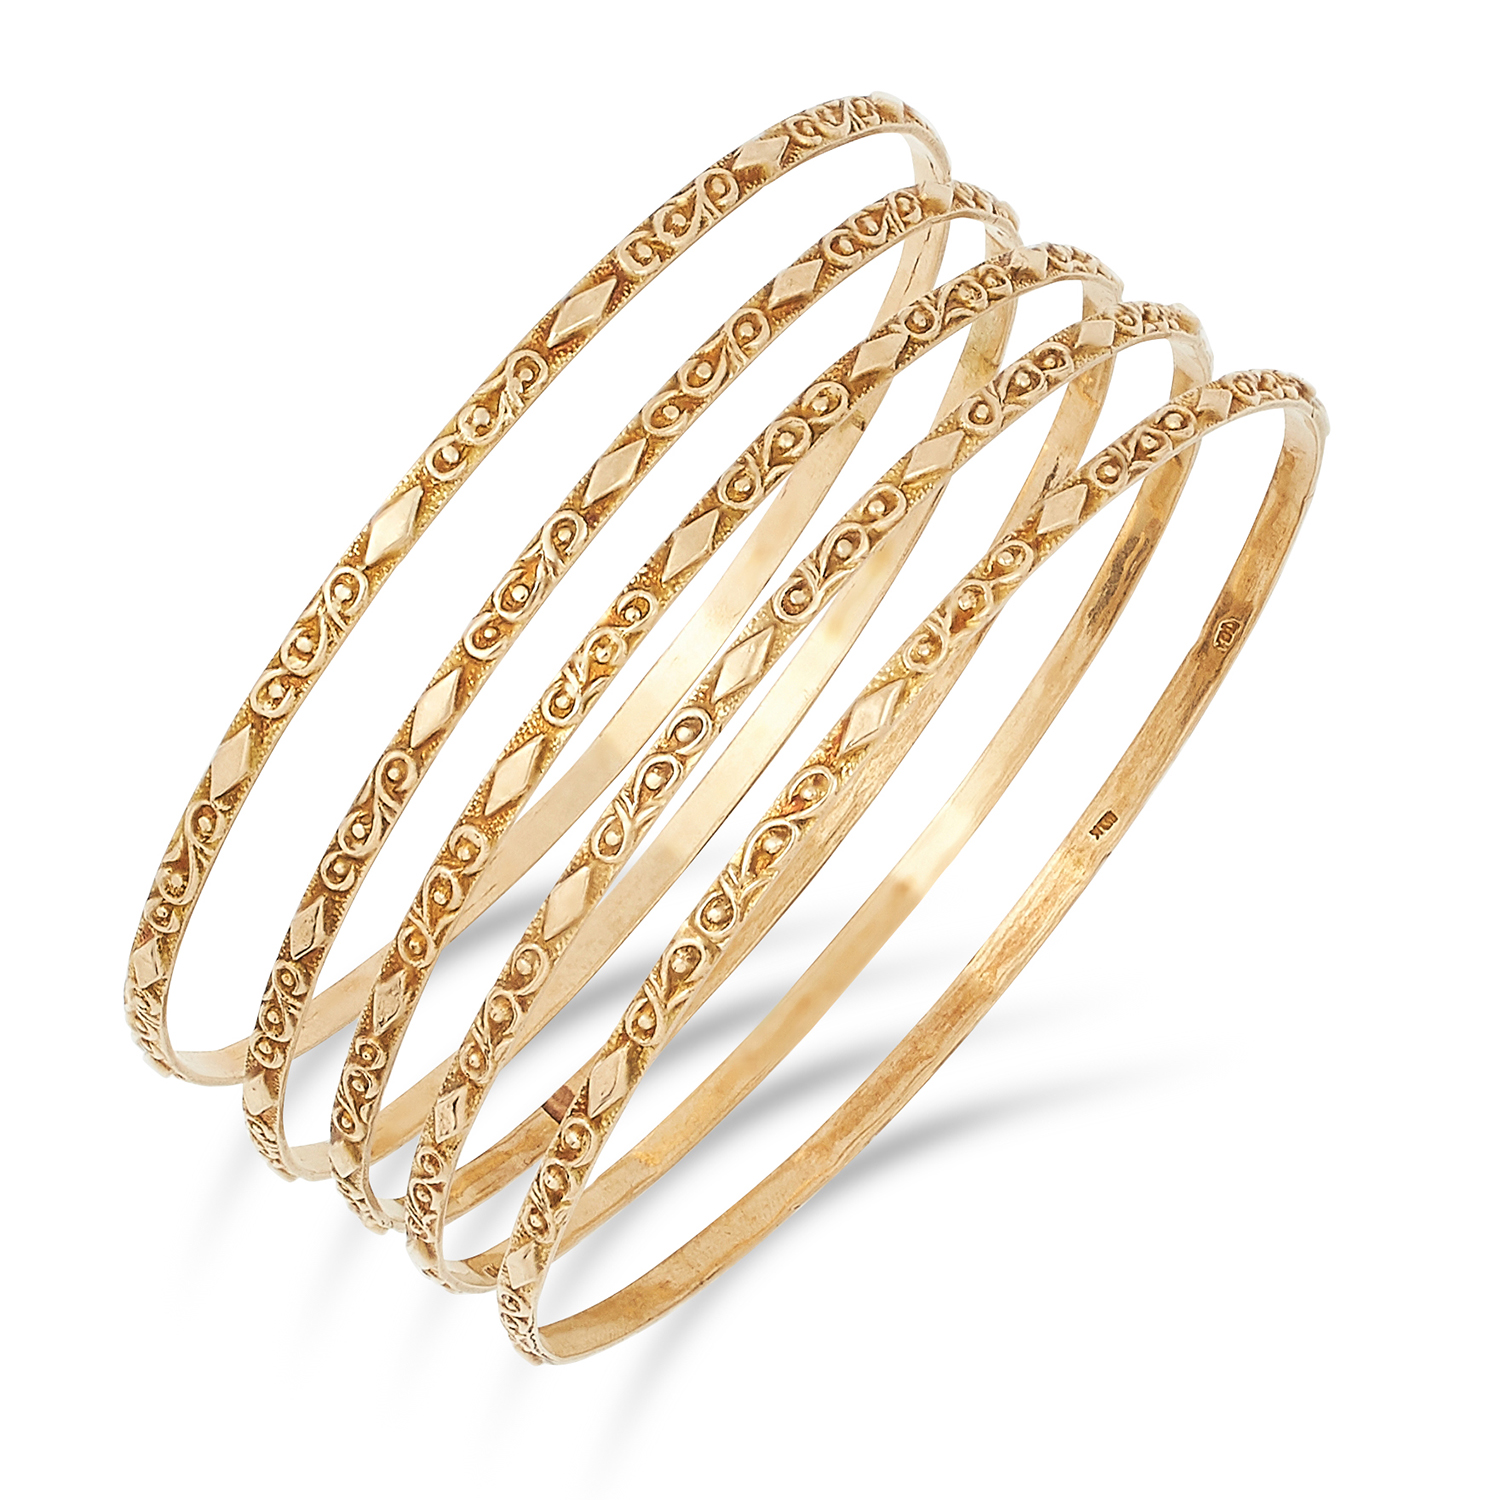 FIVE GOLD BANGLES, with textured design, inner diameter: 6.5cm, 24.7g.